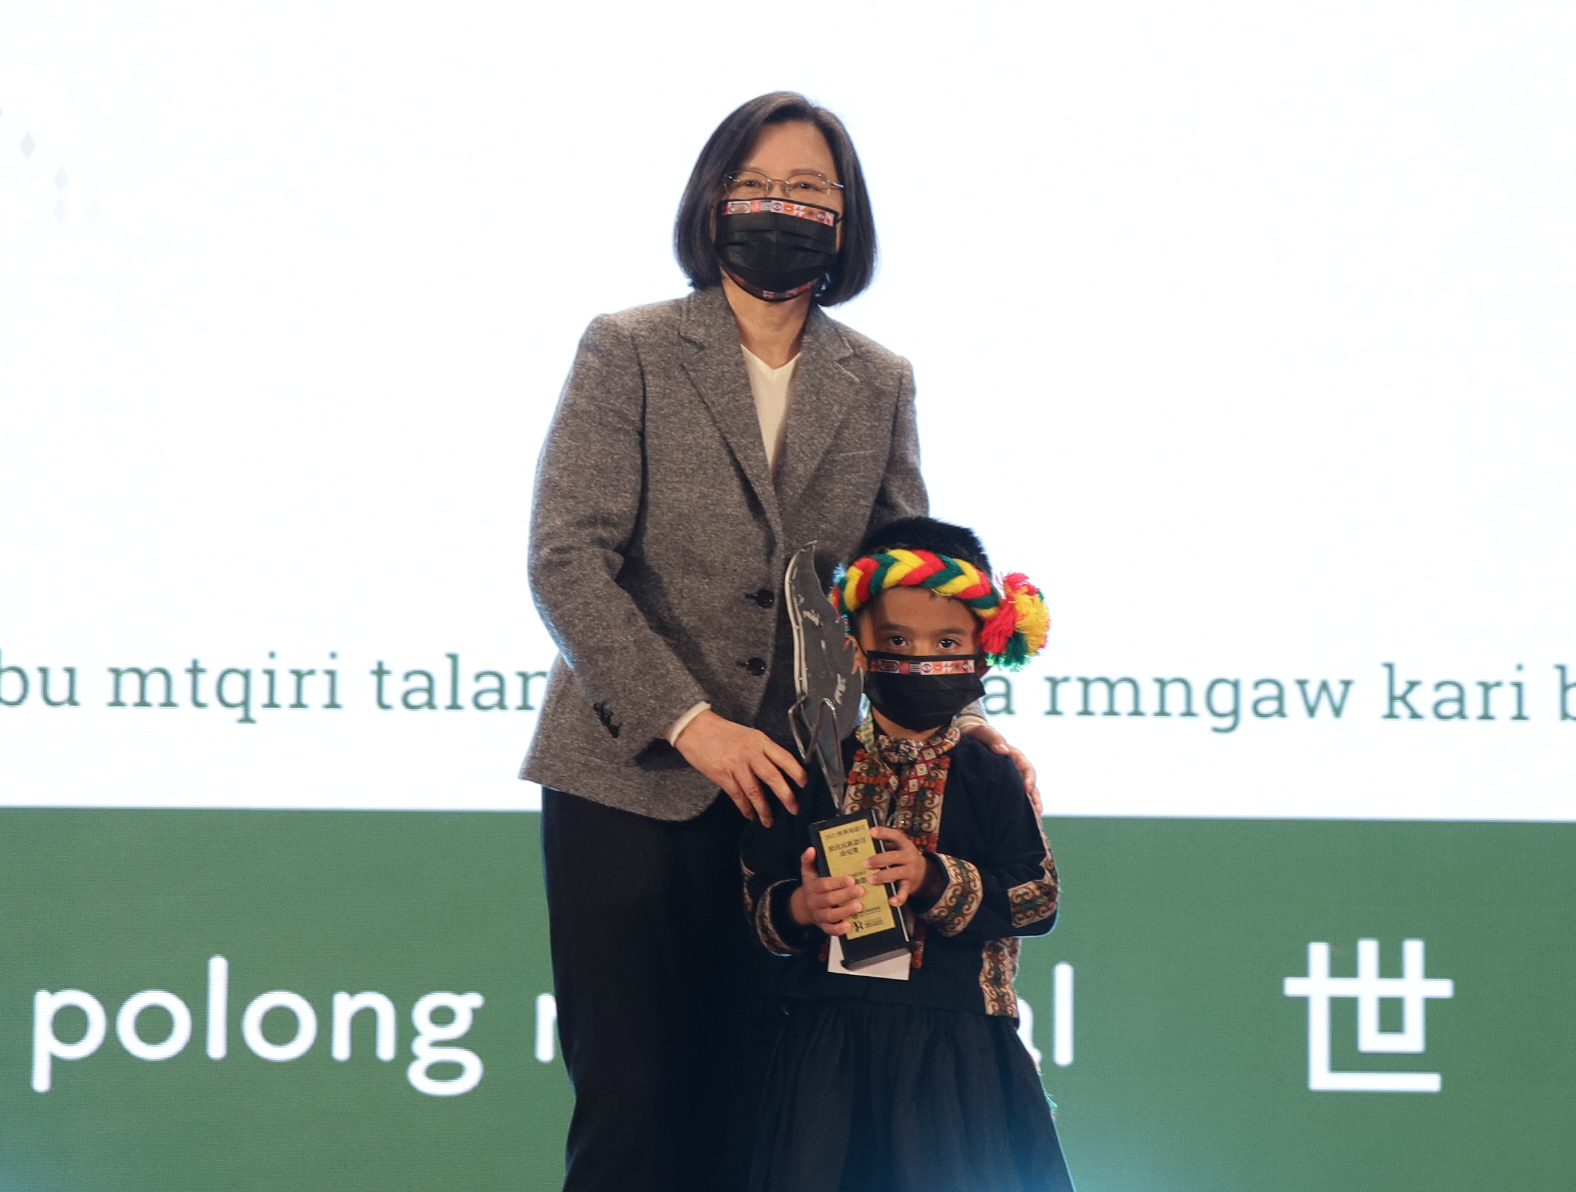 Responding to International Mother Language Day Taiwan builds an environment friendly to indigenous languages